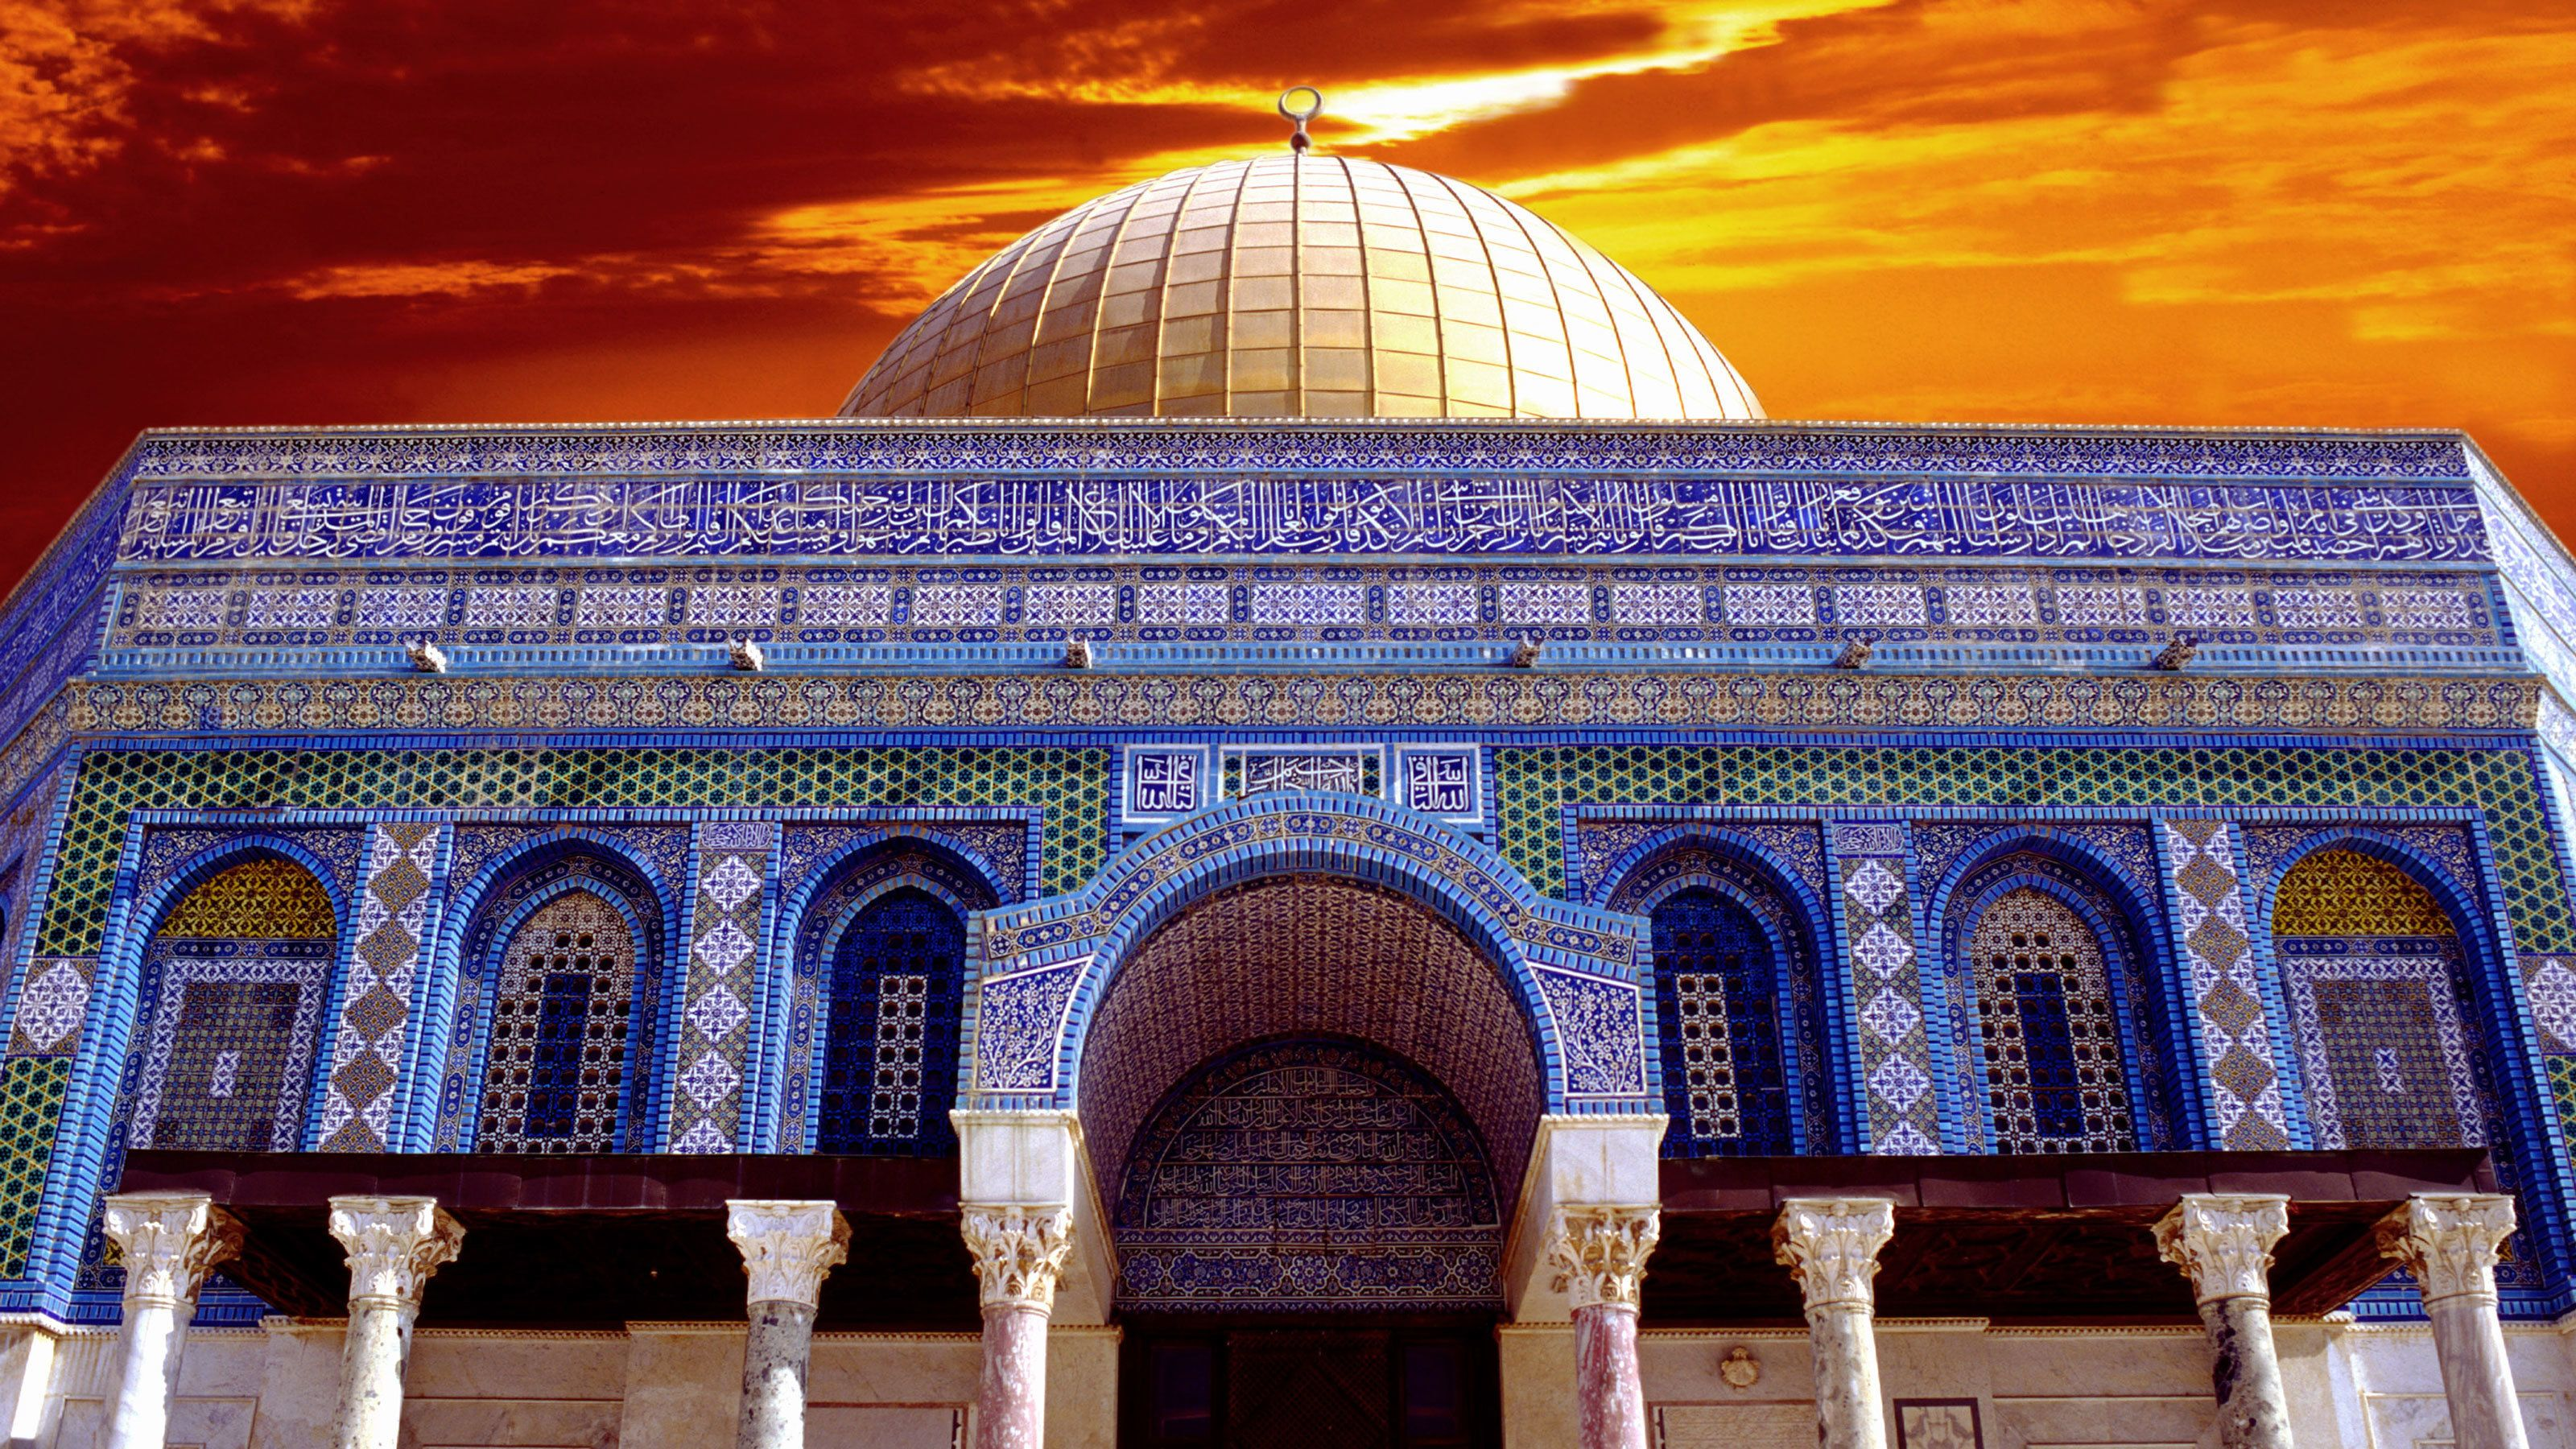 The dome of the rock in Jerusalem at sunset